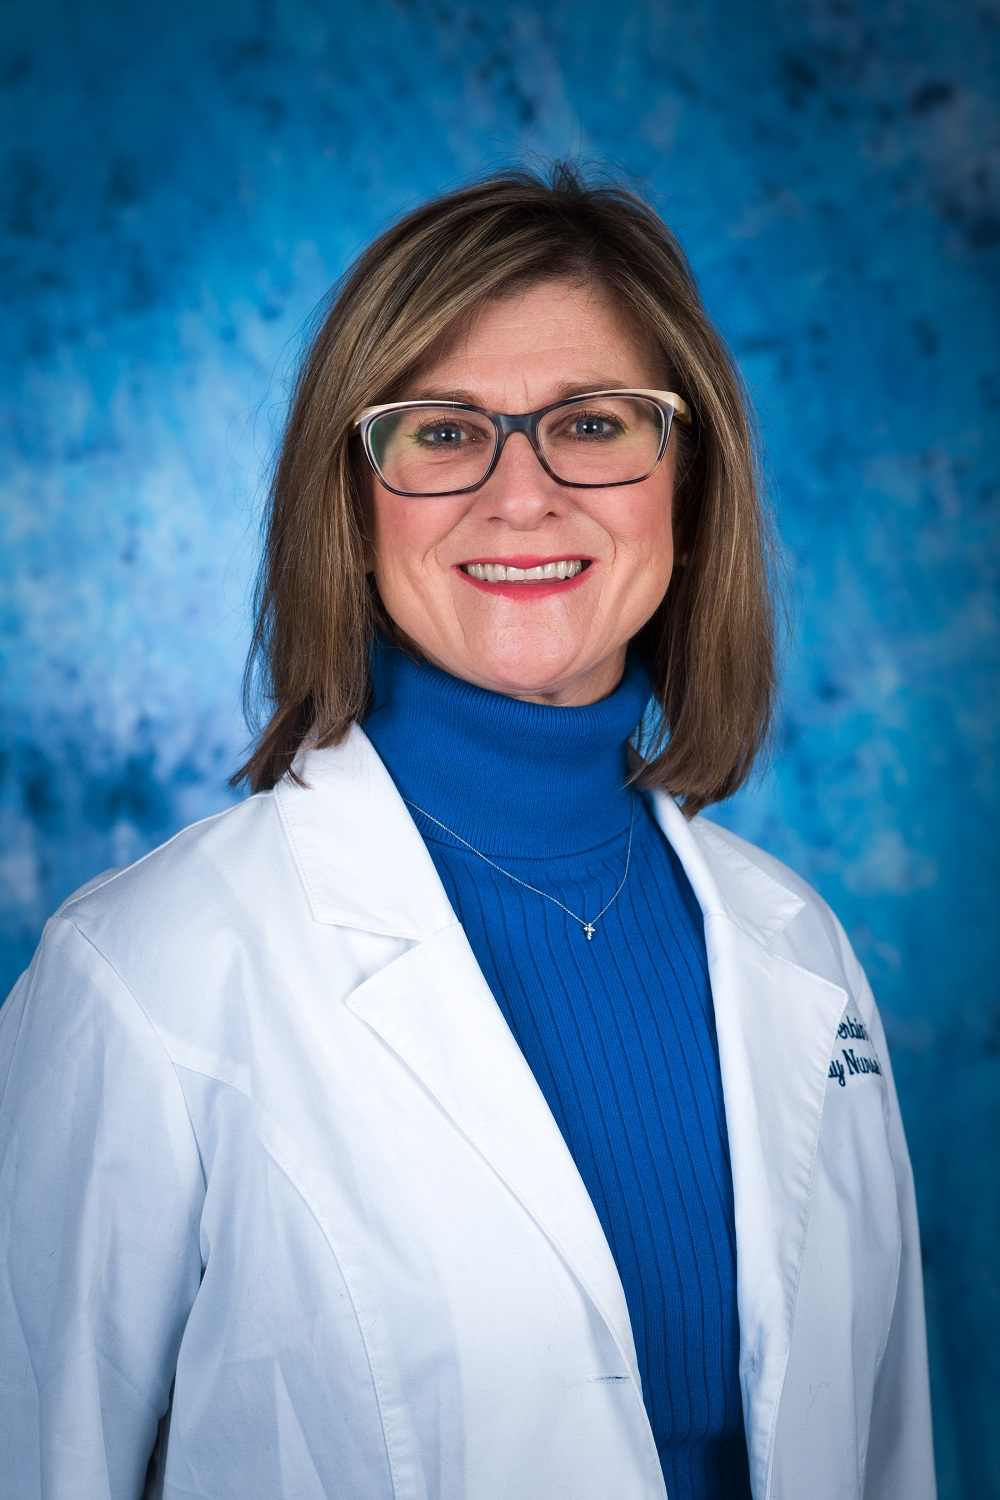 Mary F. Serbin, MSN, FNP-BC of Morristown Family Medicine